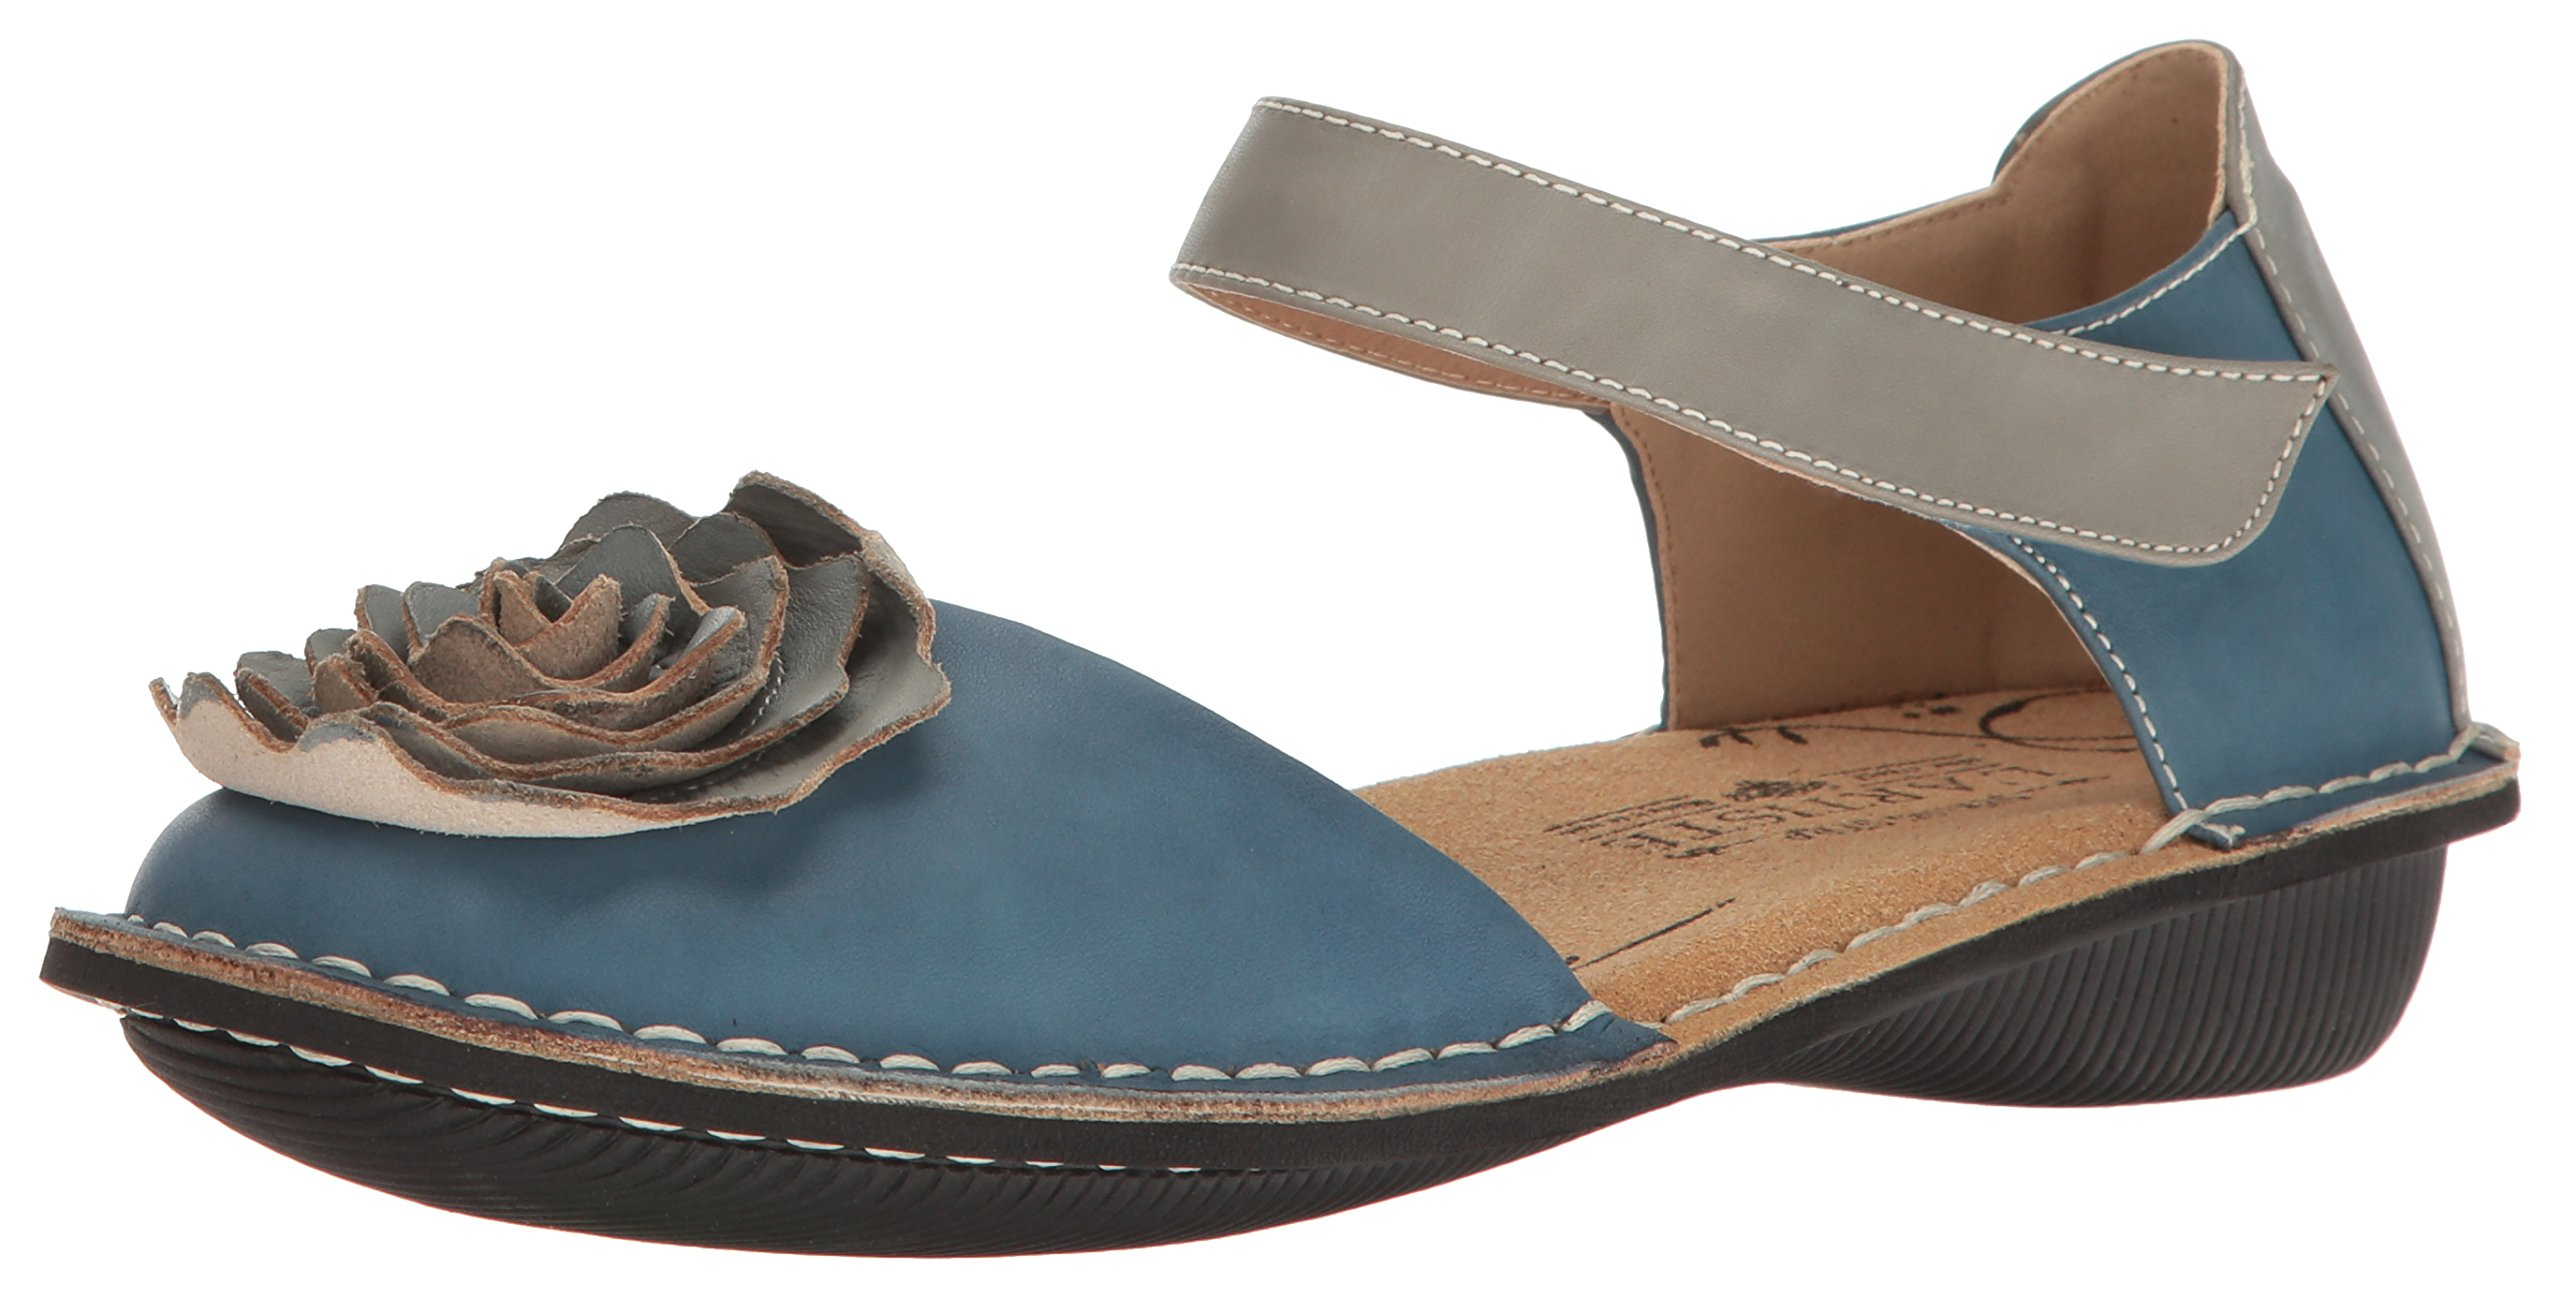 L'Artiste by Spring Step Women's Caicos-Blum Mary Jane Flat, Blue/Multi, 39 EU/8.5 M US